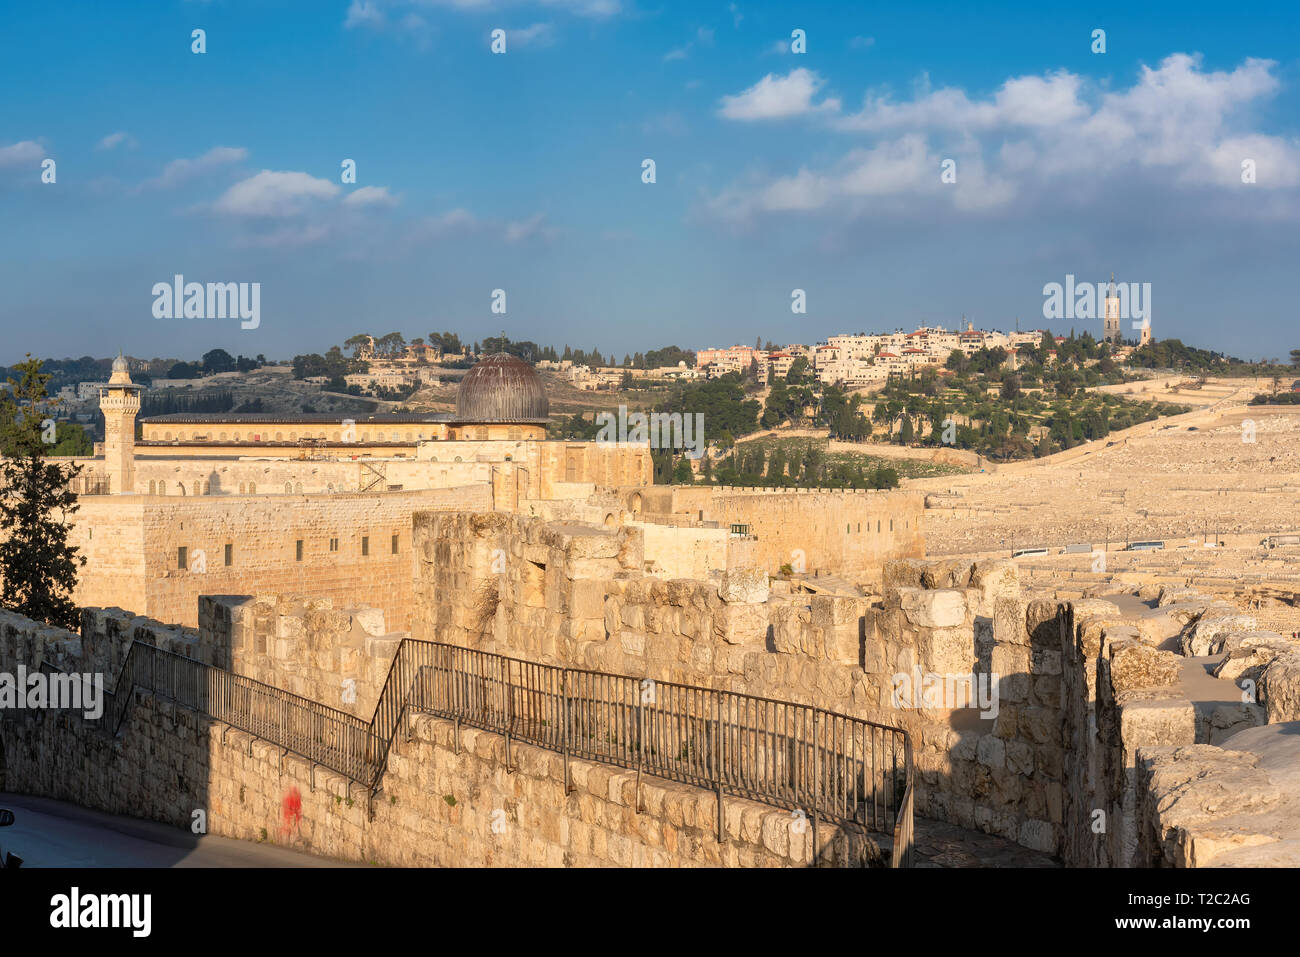 View of Temple Mount and fortress wall in Jerusalem Old Town, Israel. - Stock Image